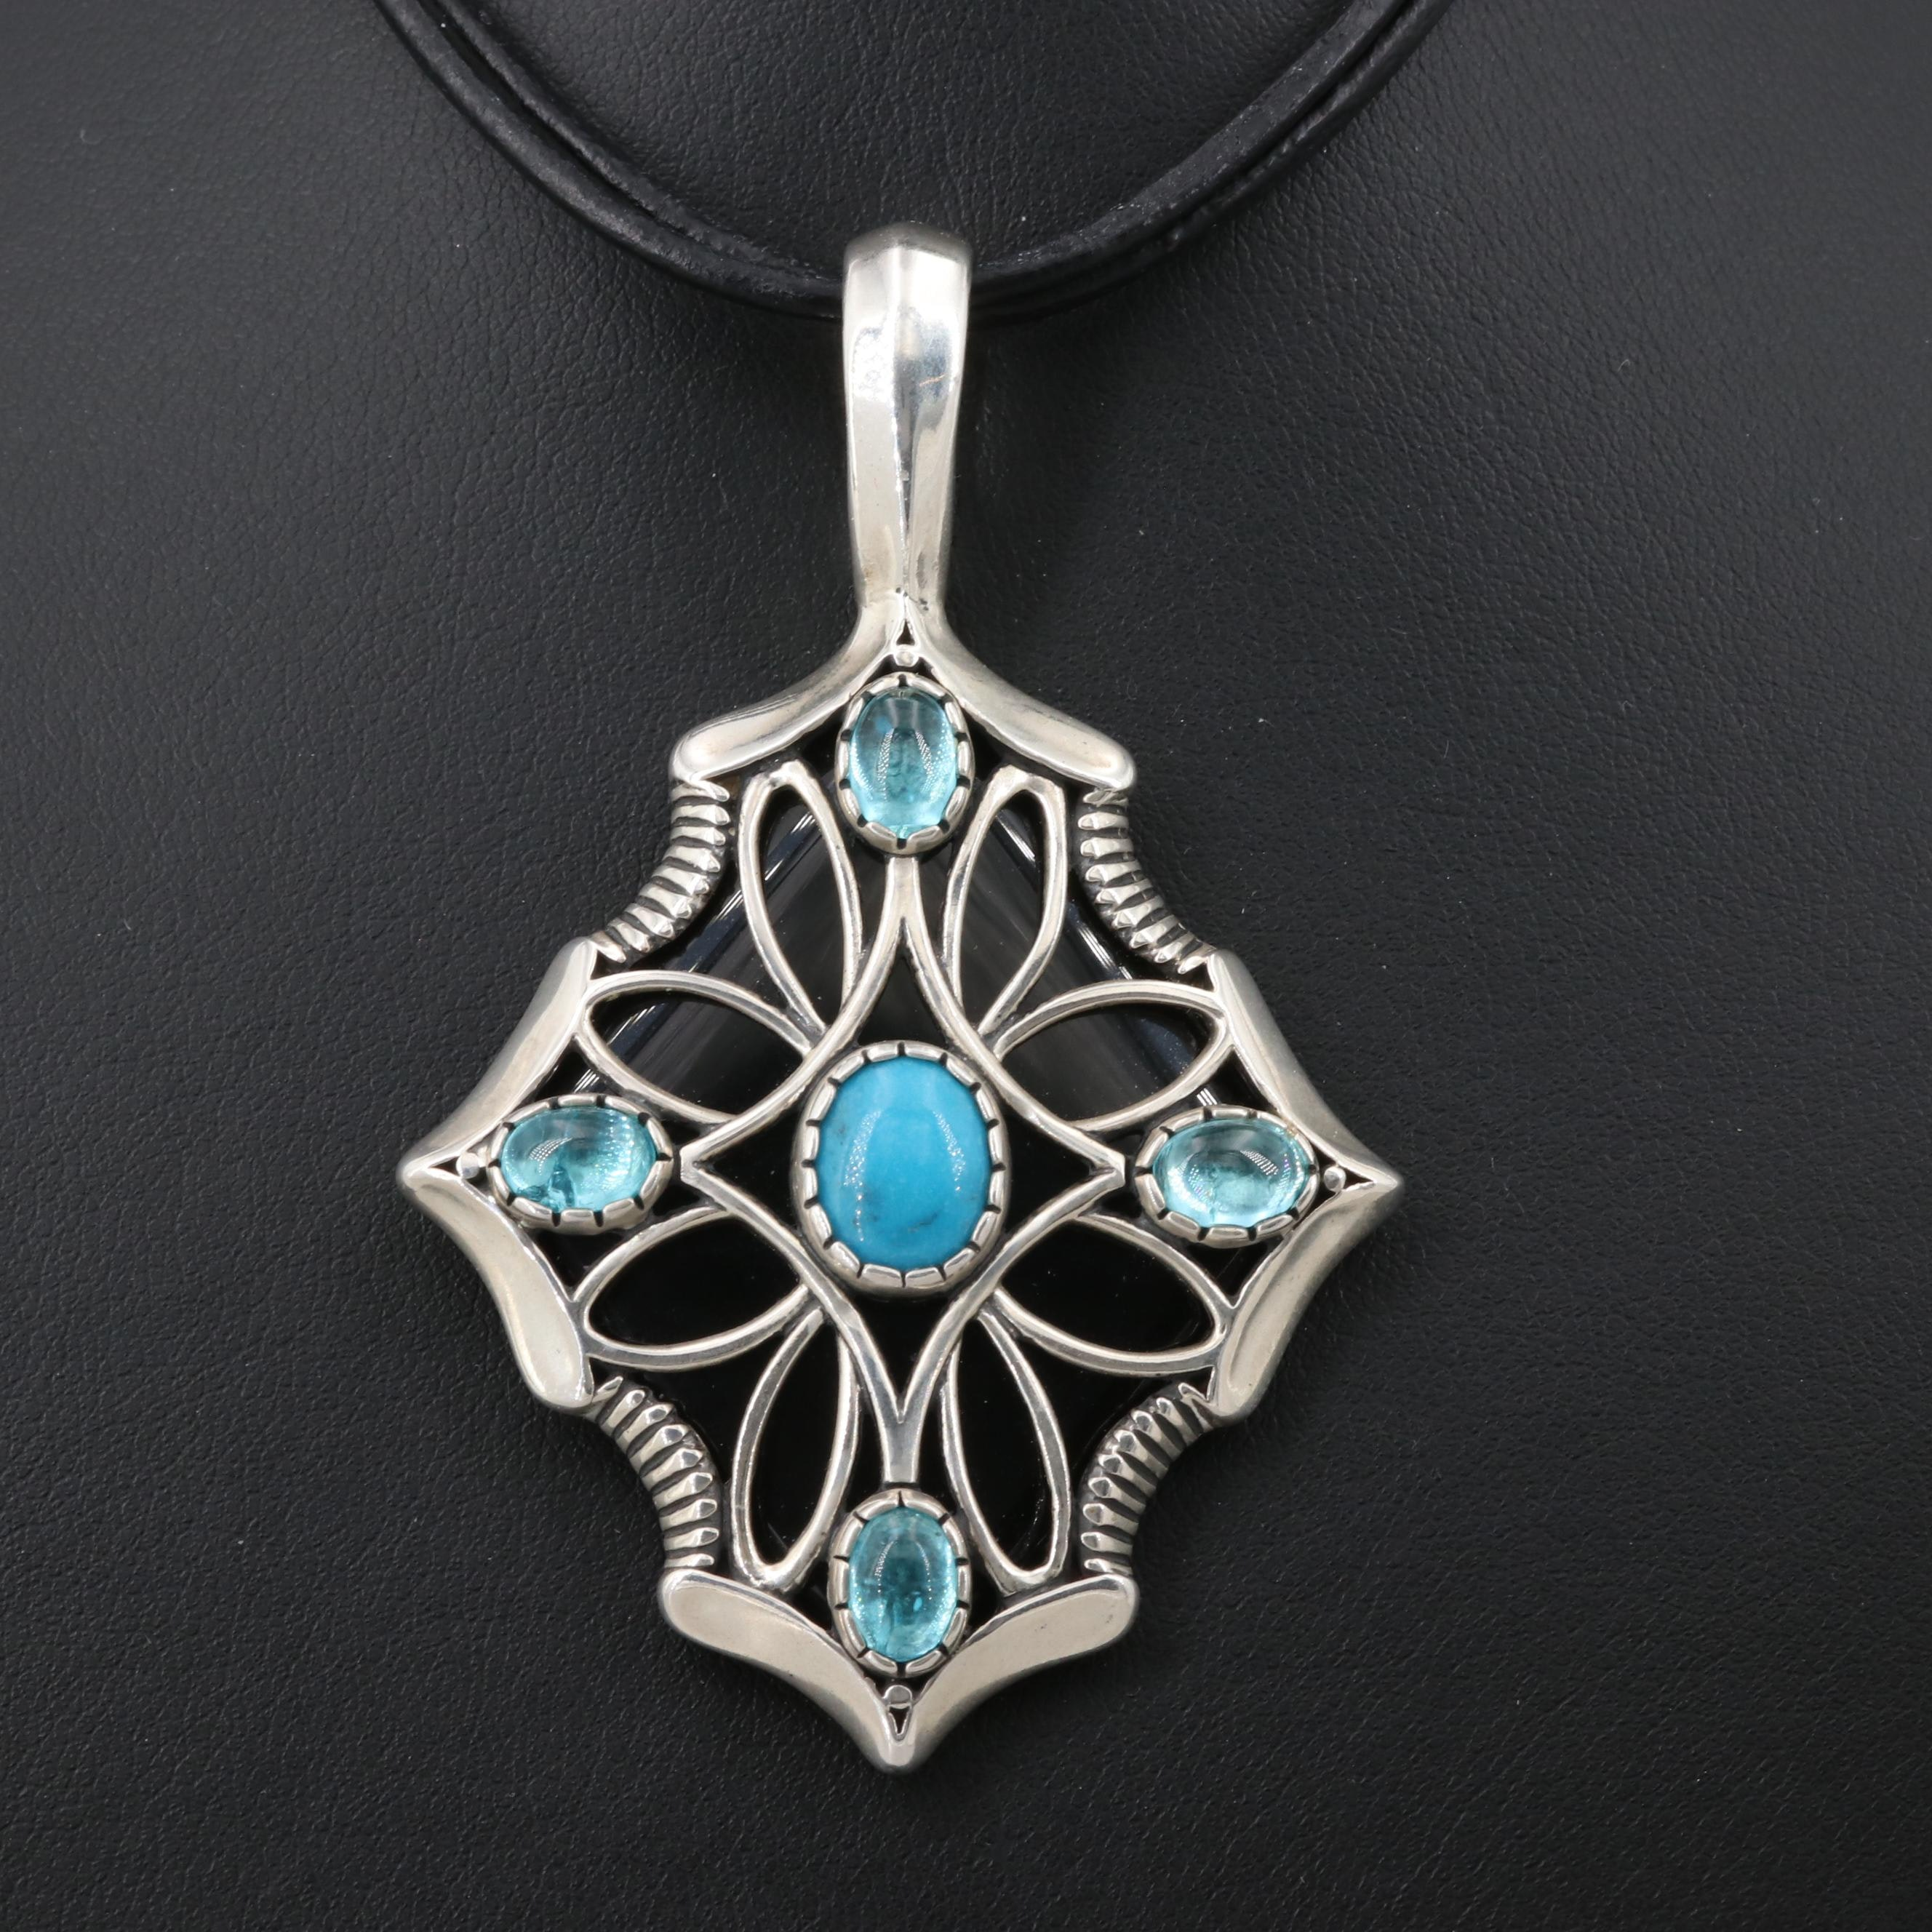 Relios Carolyn Pollack Sterling Silver Turquoise and Apatite Pendant Necklace